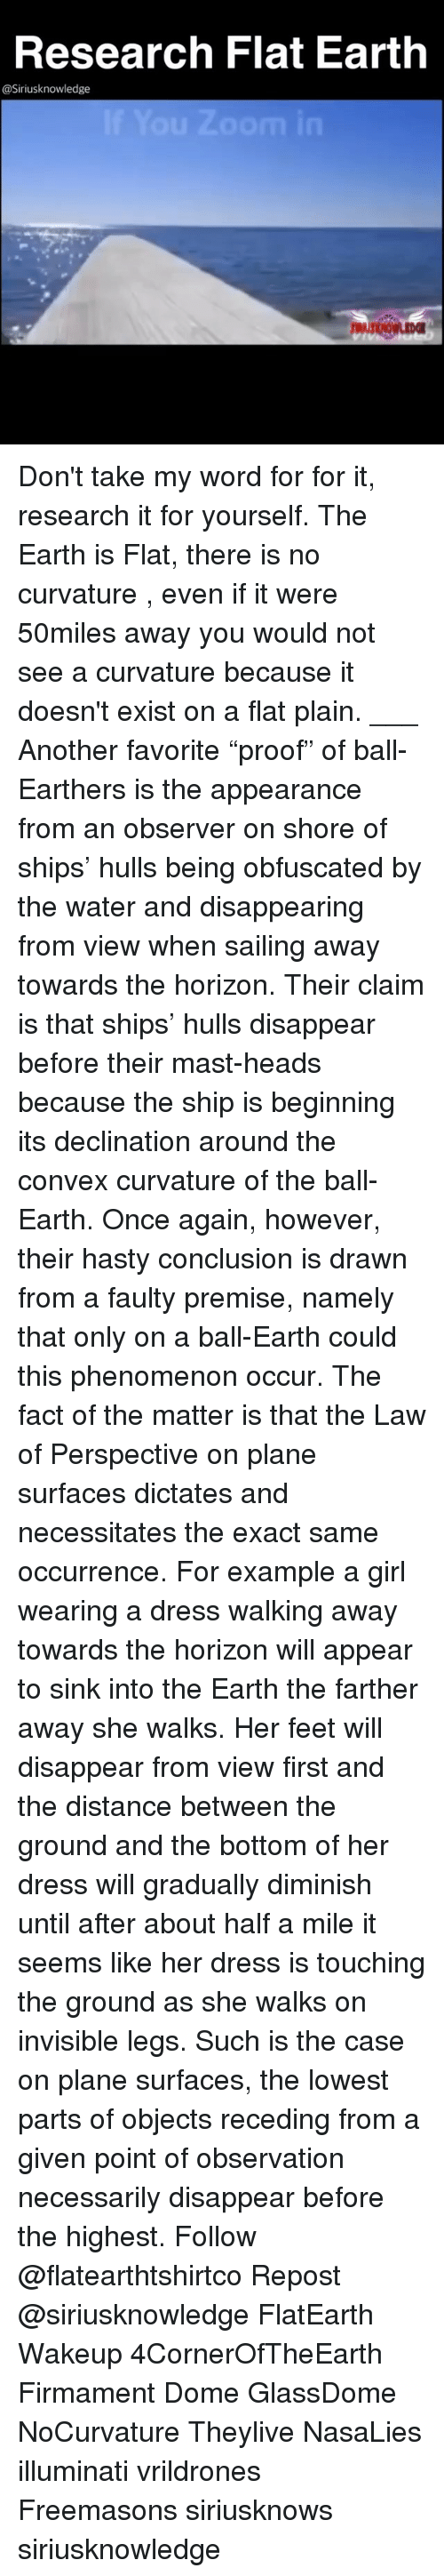 "Memes, Flat Earth, and Phenomenon: Research Flat Earth  @Siriusknowledge Don't take my word for for it, research it for yourself. The Earth is Flat, there is no curvature , even if it were 50miles away you would not see a curvature because it doesn't exist on a flat plain. ___ Another favorite ""proof"" of ball-Earthers is the appearance from an observer on shore of ships' hulls being obfuscated by the water and disappearing from view when sailing away towards the horizon. Their claim is that ships' hulls disappear before their mast-heads because the ship is beginning its declination around the convex curvature of the ball-Earth. Once again, however, their hasty conclusion is drawn from a faulty premise, namely that only on a ball-Earth could this phenomenon occur. The fact of the matter is that the Law of Perspective on plane surfaces dictates and necessitates the exact same occurrence. For example a girl wearing a dress walking away towards the horizon will appear to sink into the Earth the farther away she walks. Her feet will disappear from view first and the distance between the ground and the bottom of her dress will gradually diminish until after about half a mile it seems like her dress is touching the ground as she walks on invisible legs. Such is the case on plane surfaces, the lowest parts of objects receding from a given point of observation necessarily disappear before the highest. Follow @flatearthtshirtco Repost @siriusknowledge FlatEarth Wakeup 4CornerOfTheEarth Firmament Dome GlassDome NoCurvature Theylive NasaLies illuminati vrildrones Freemasons siriusknows siriusknowledge"